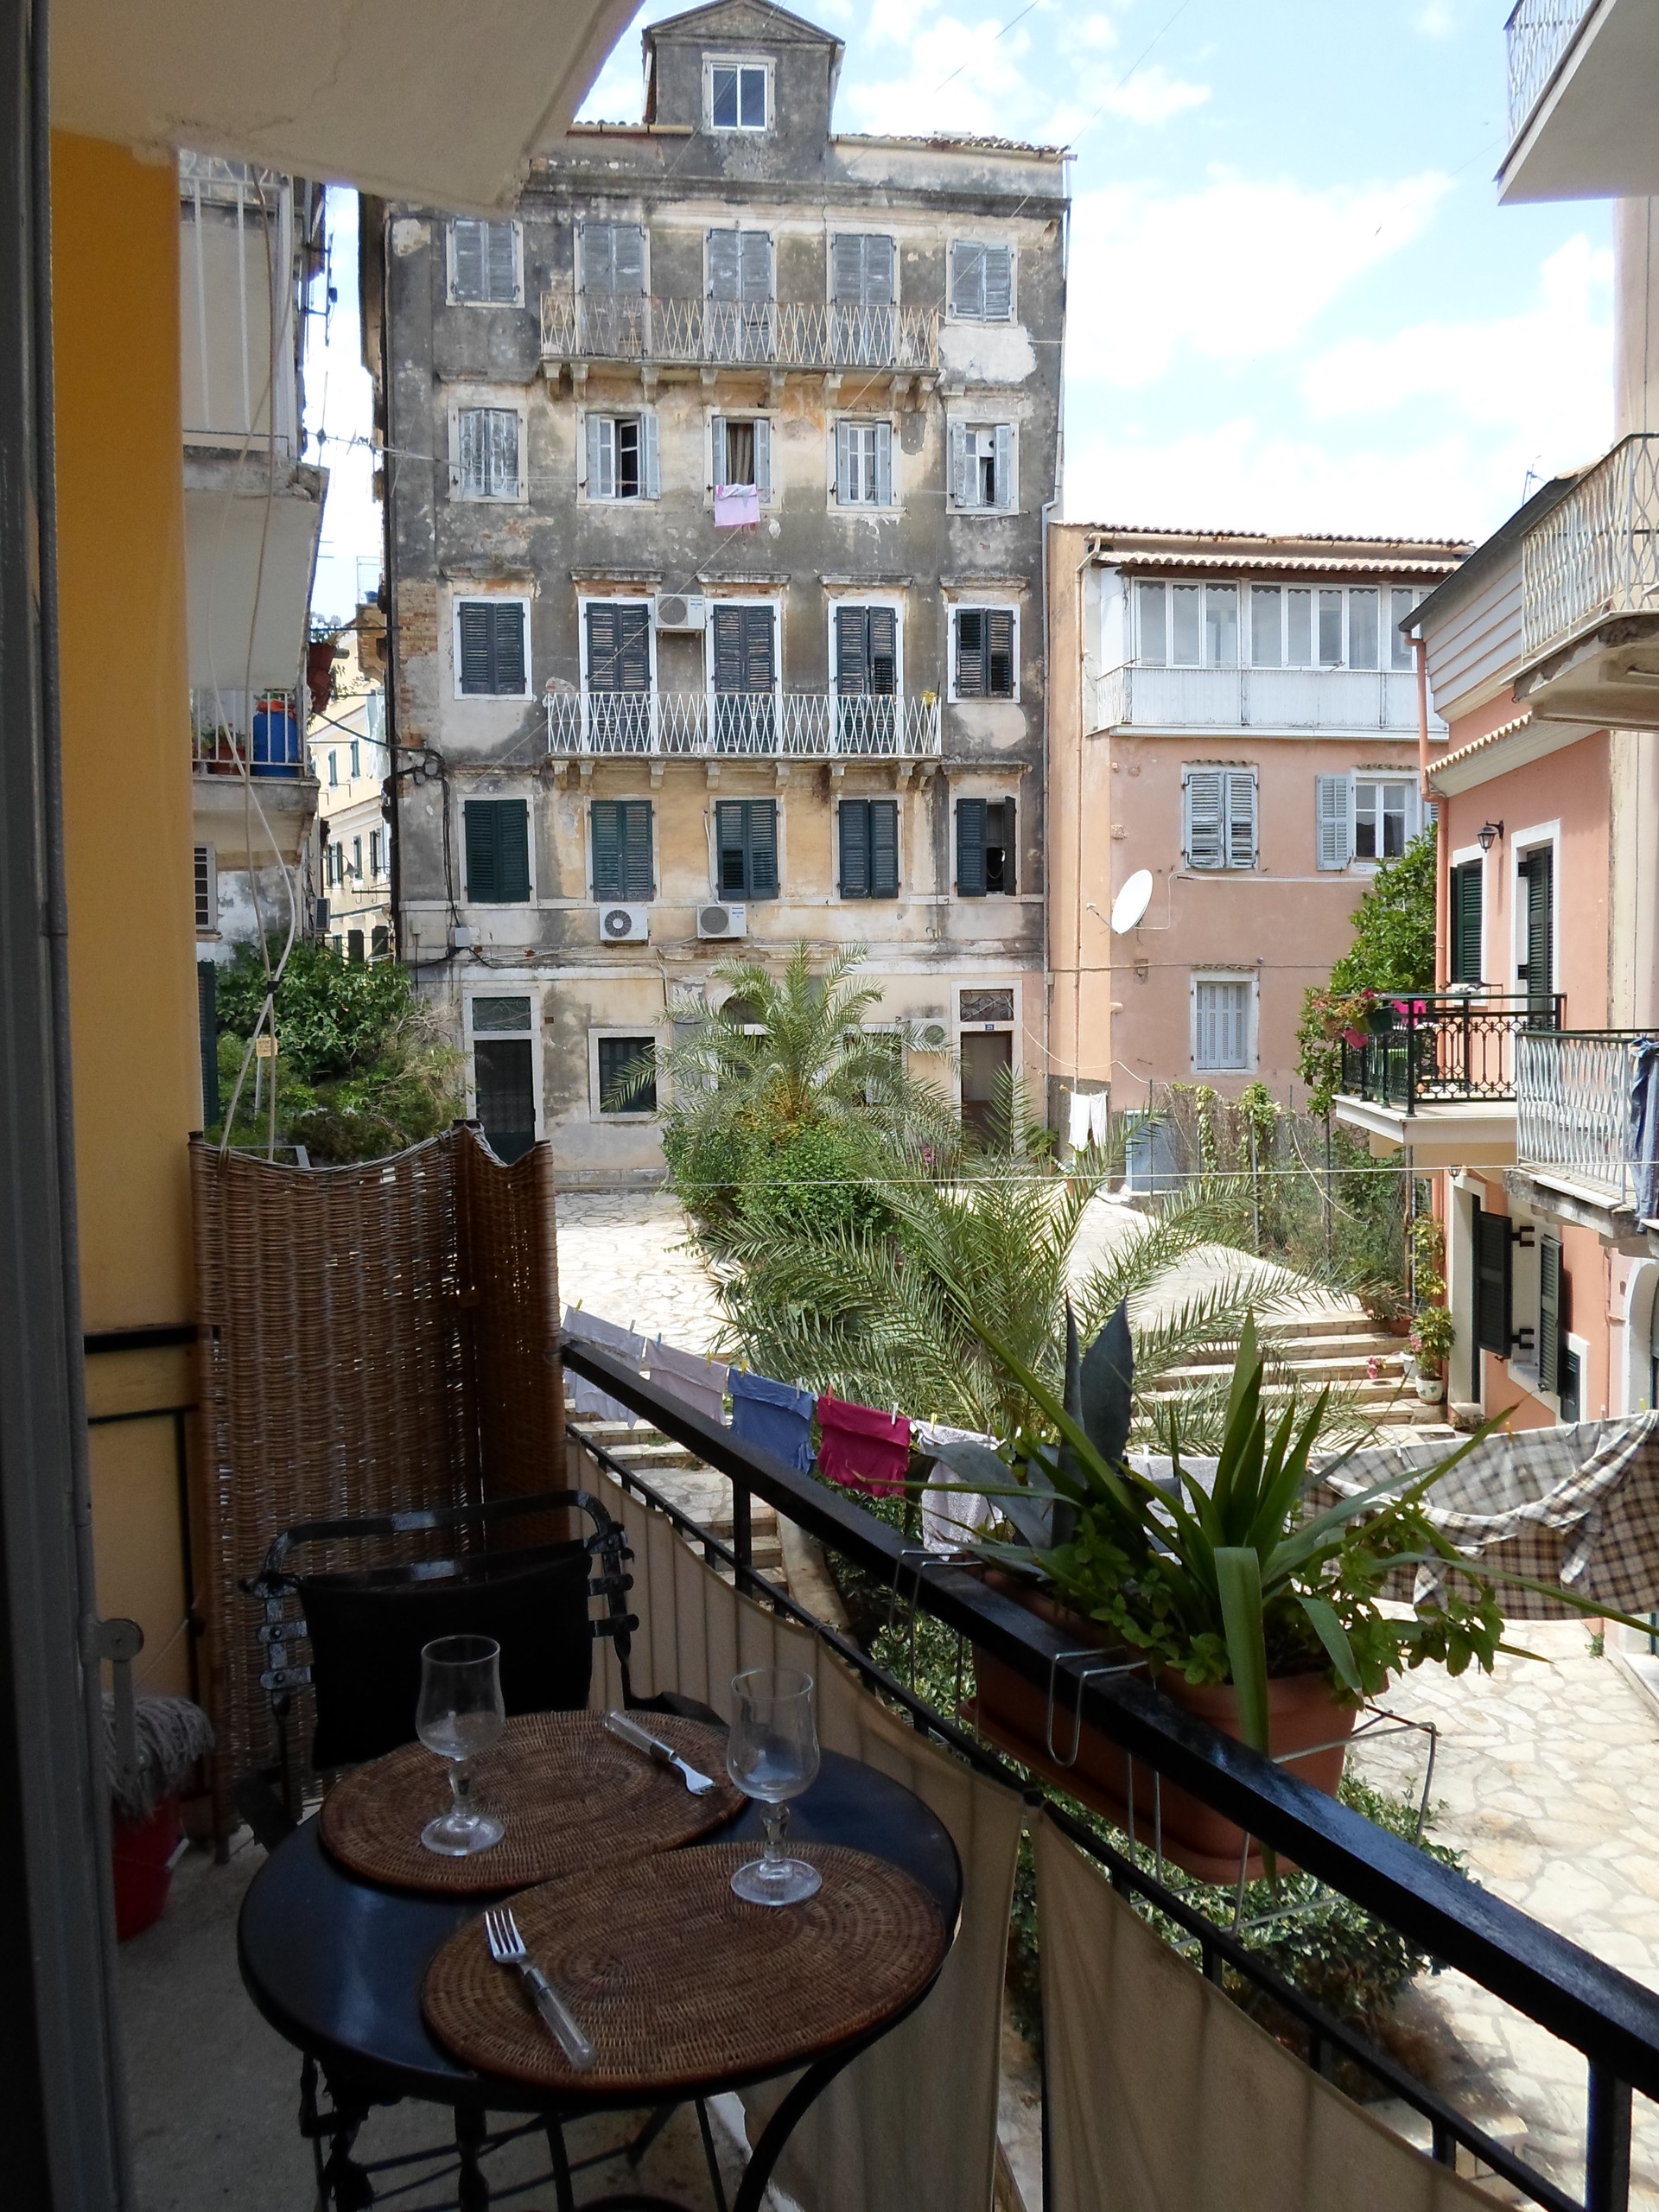 2-bedroom-apartment-corfu-old-city-bdac4ba013fae0732efcee02e67d07f3